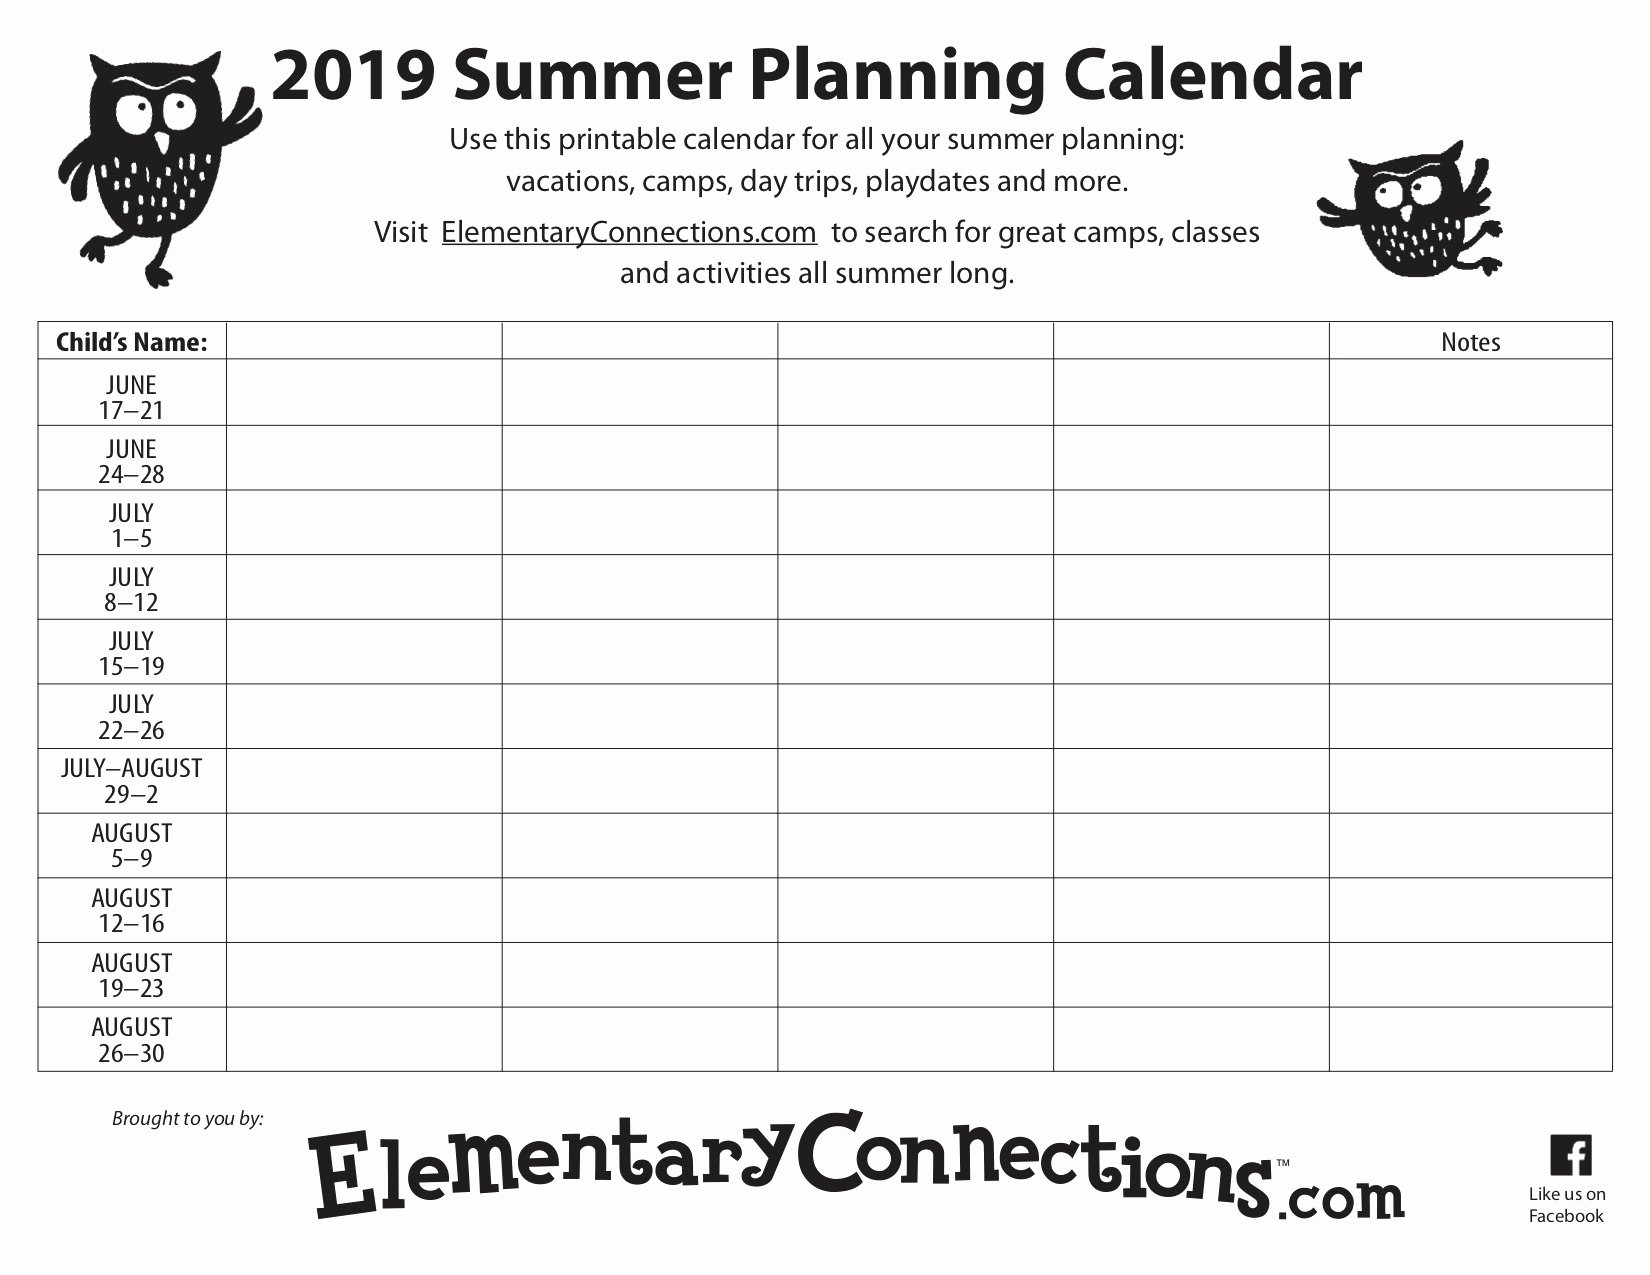 Summer Camp Daily Schedule Template Inspirational 2019 Summer Planning Calendar